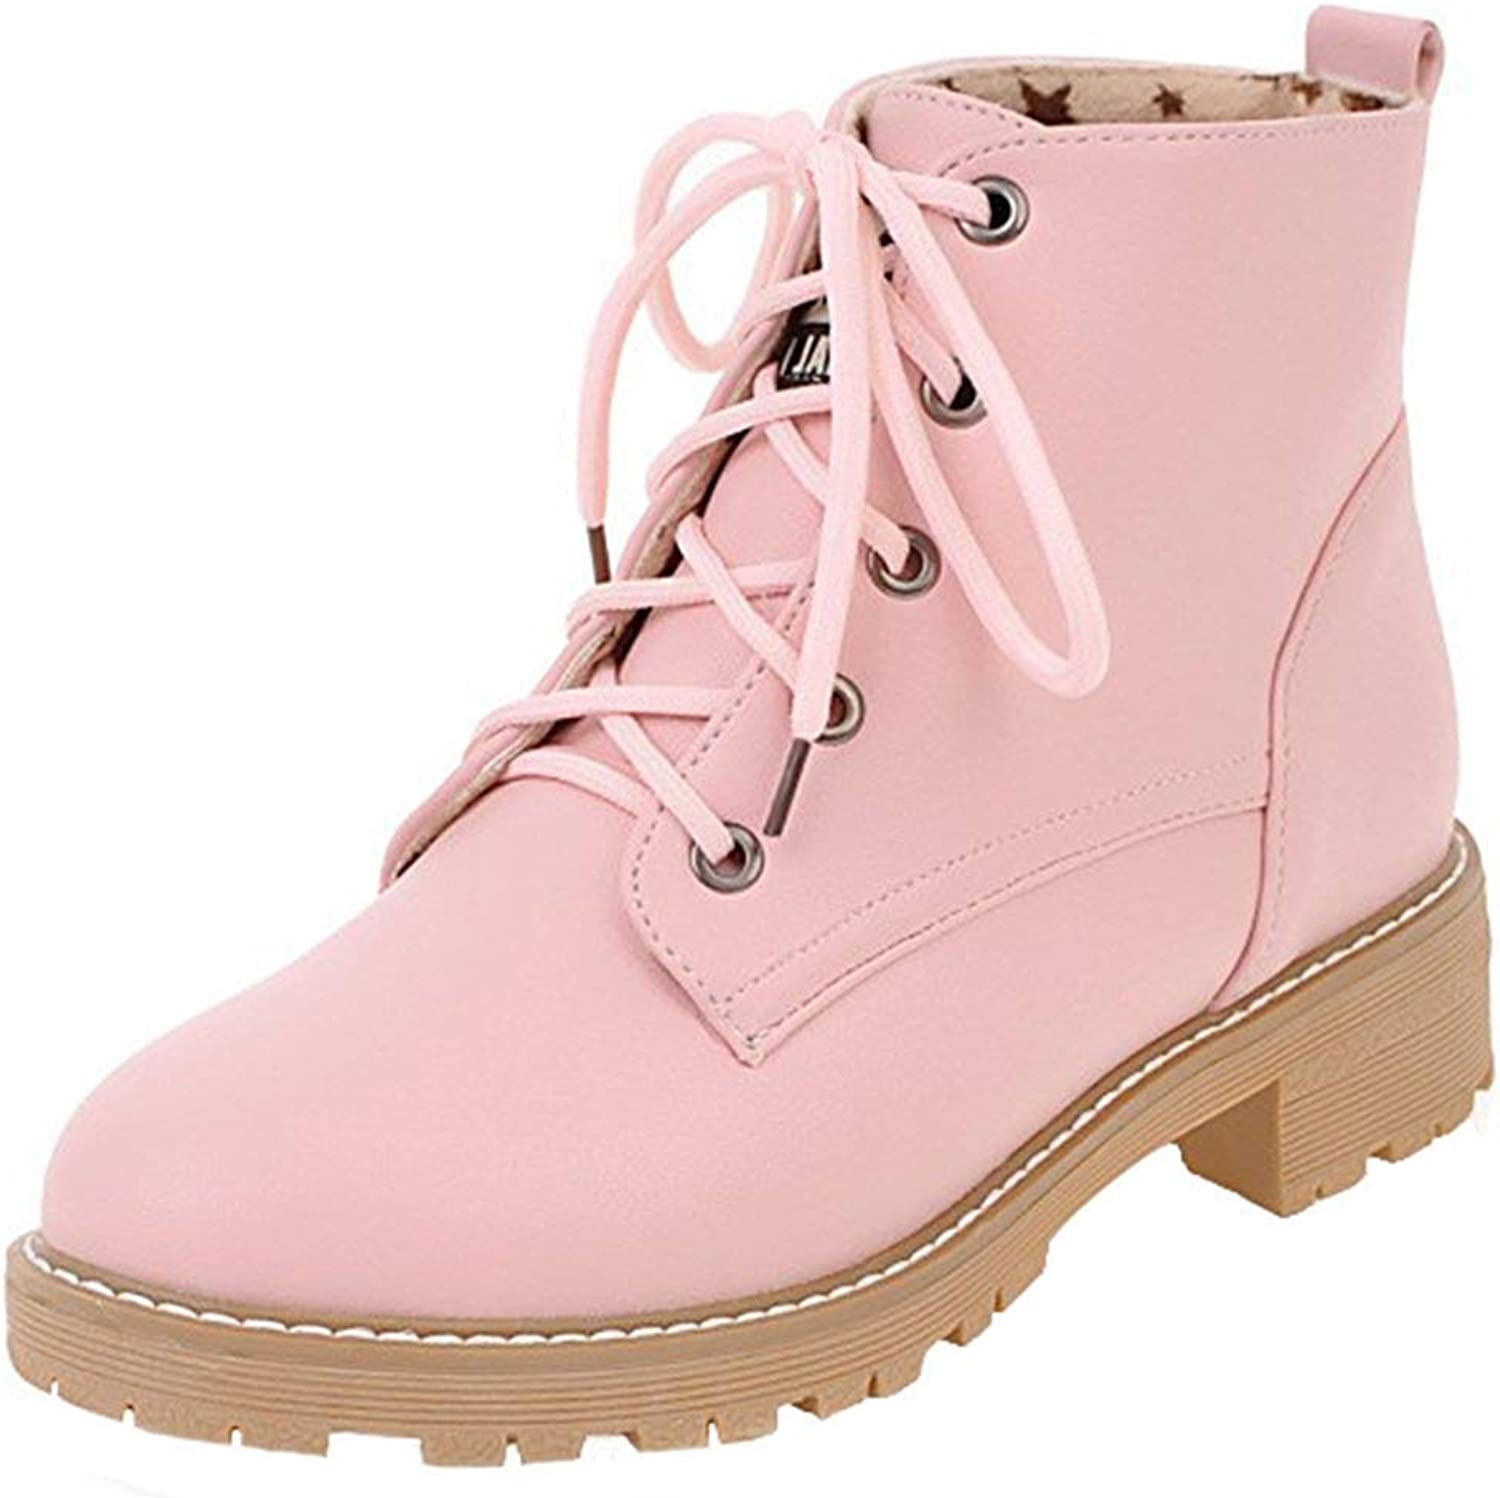 Ghapwe Women's Casual Round Toe Low Block Heel Platform Short Martin Boots Lace Up Ankle Booties Pink 7.5 M US